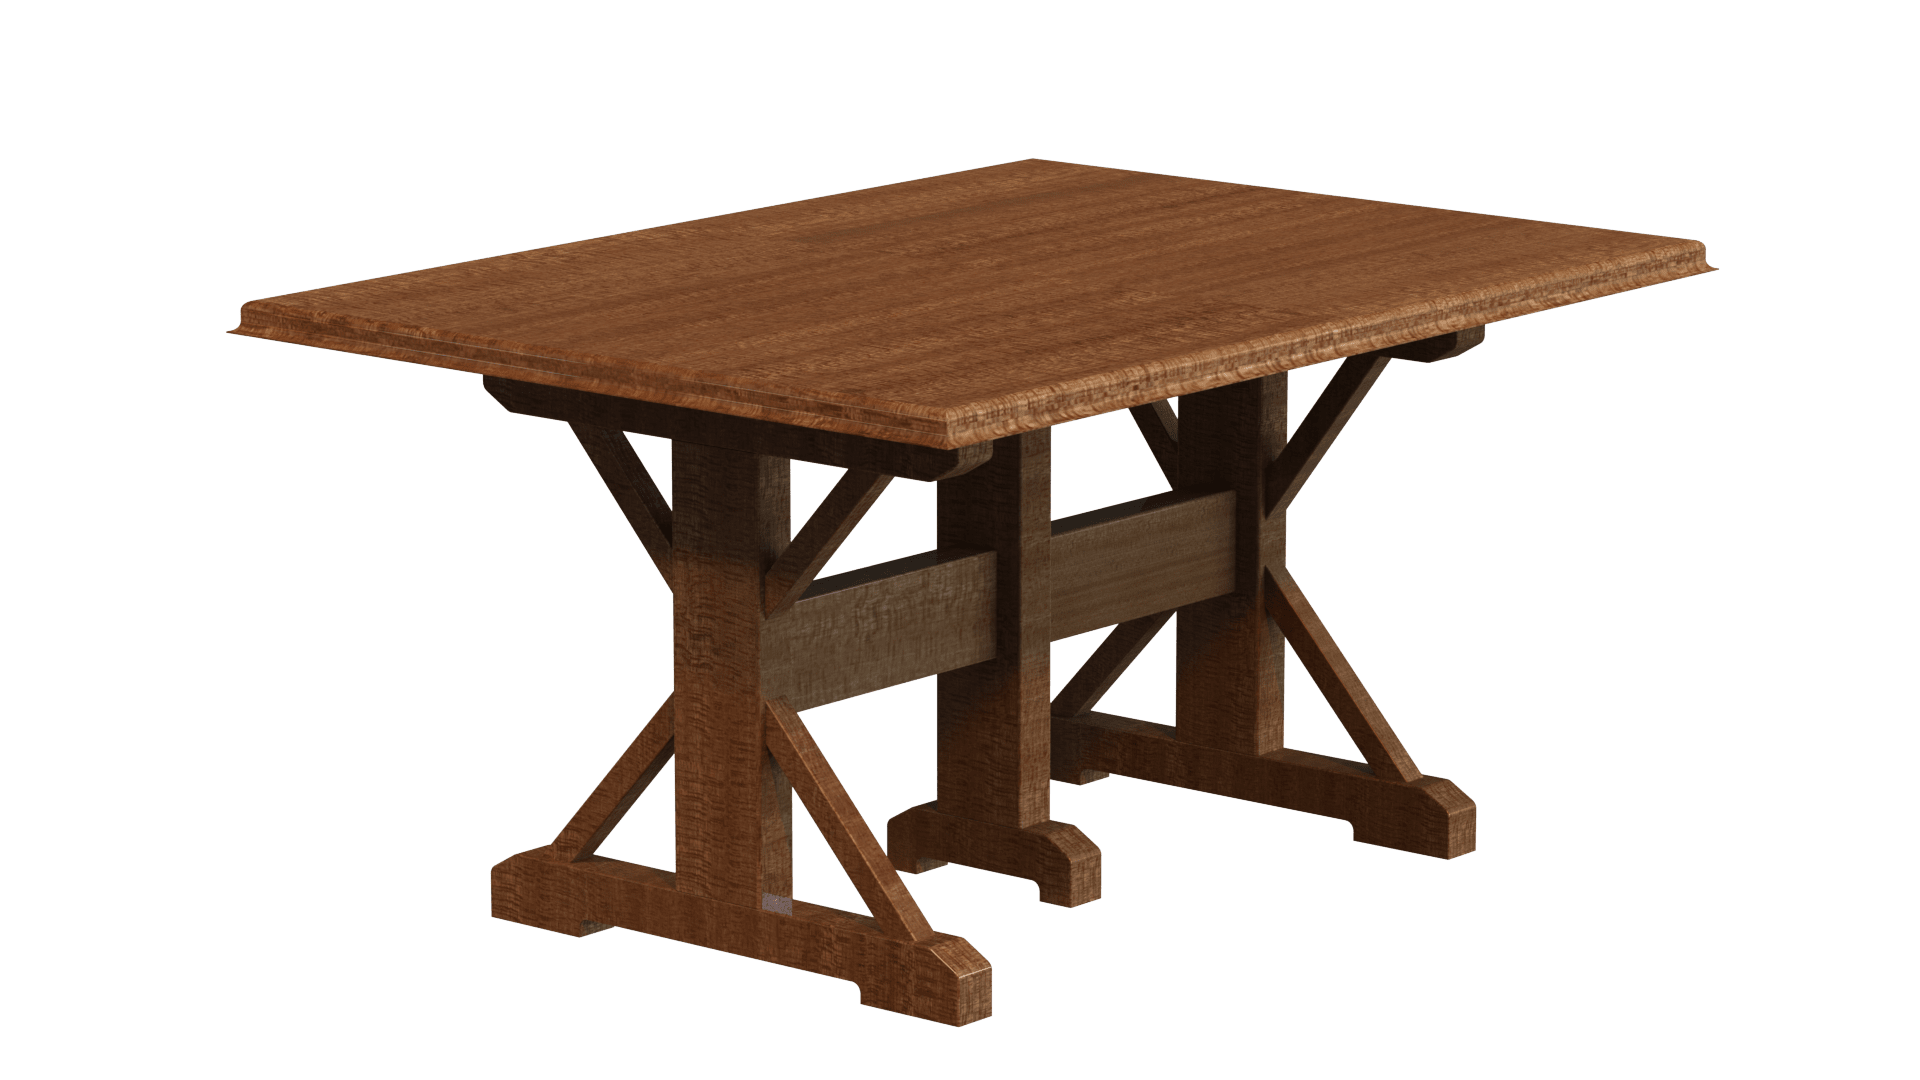 Available Tables in SOLIDWORKS Drawings | Computer Aided ...